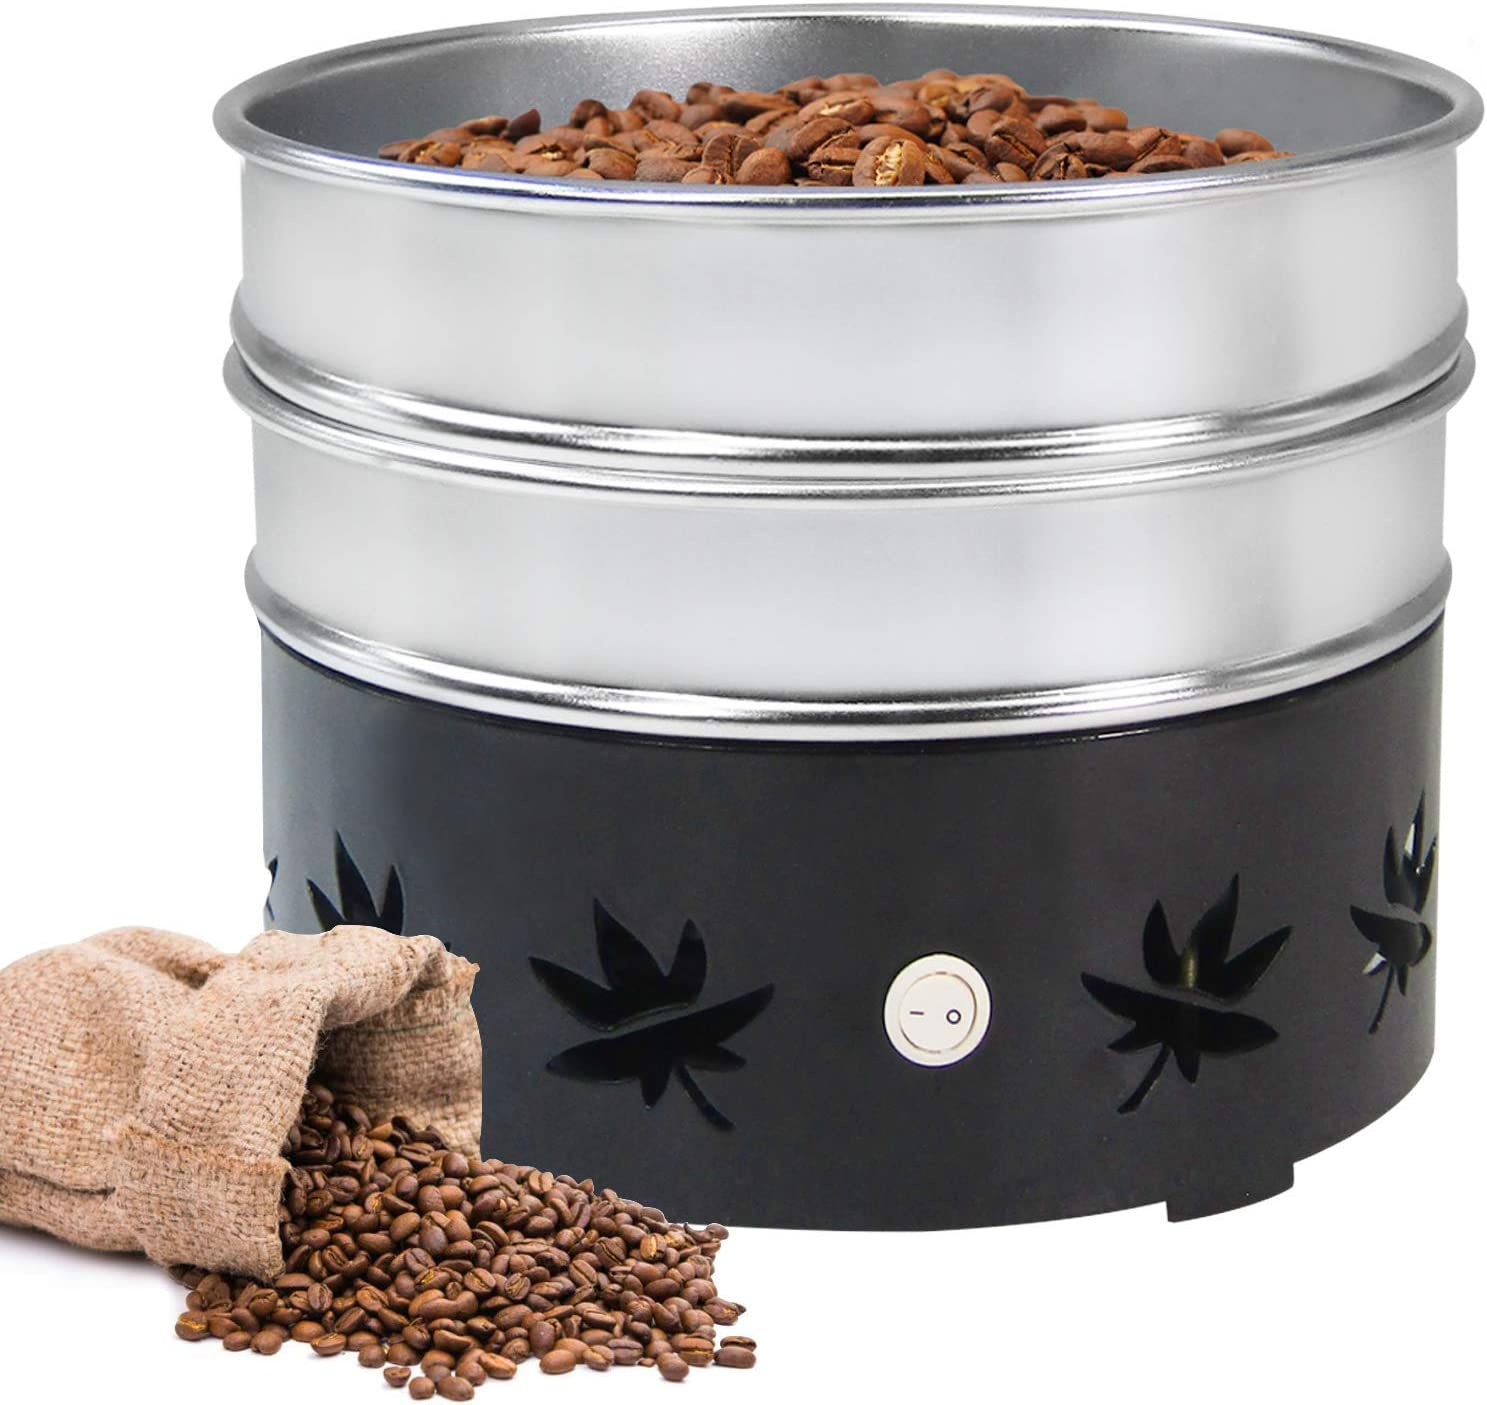 Home Coffee Beans Cooler Machine Electric Coffee Beans Cooling Tray Collect Chaffs&Cool 1.1lb Beans in 1-2mins 110V US Plug